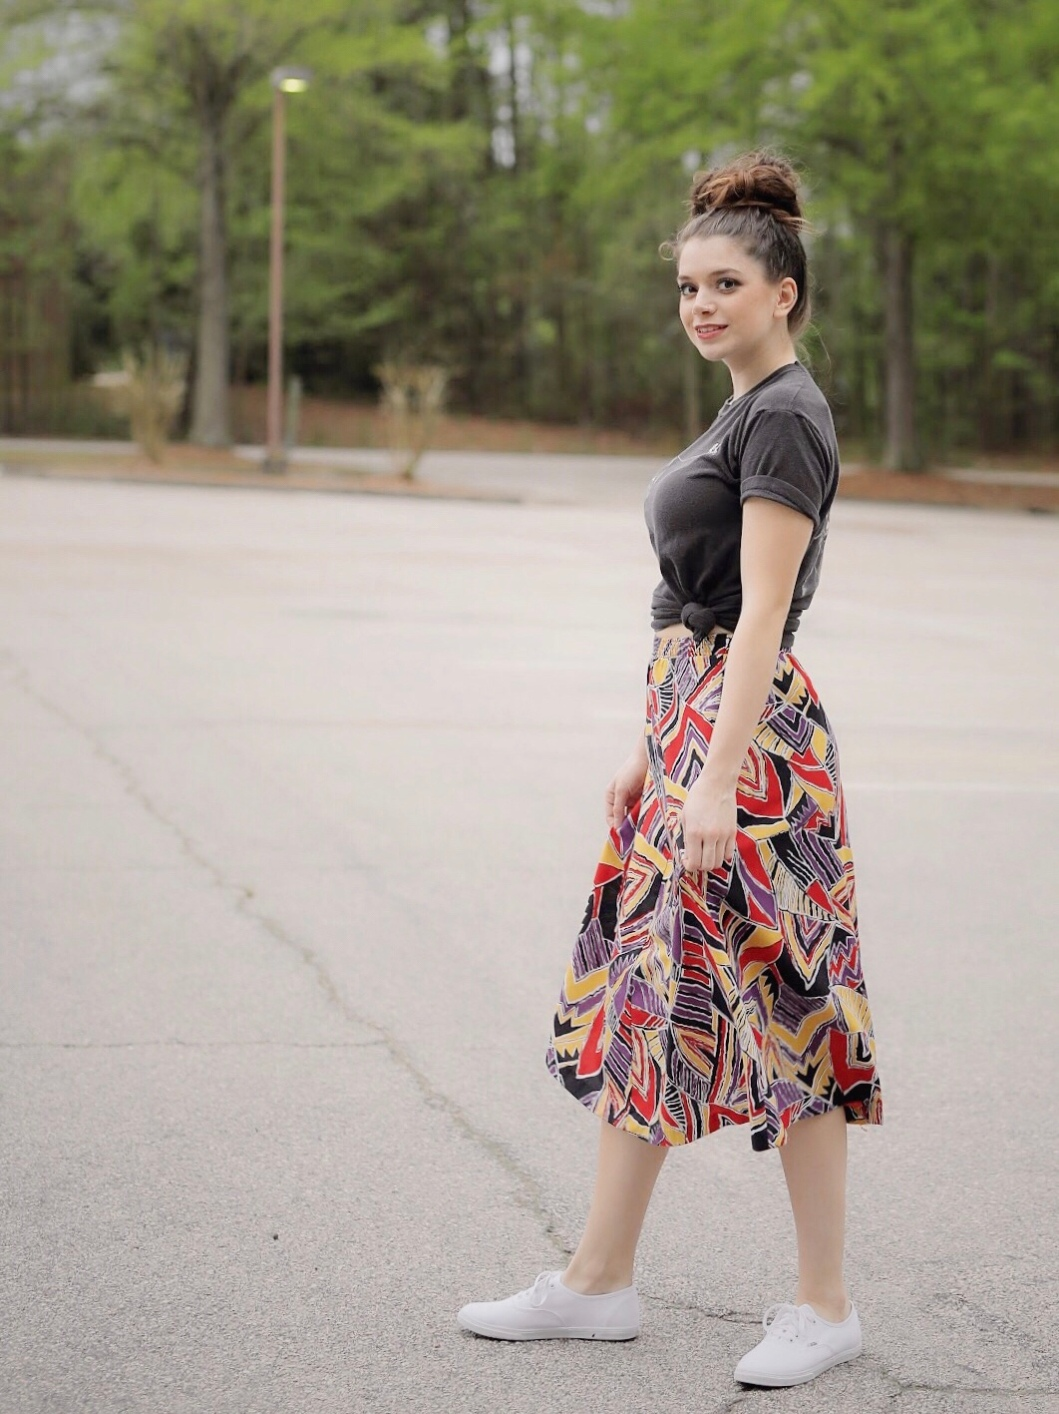 The Block Vintage Patterned Midi Skirt and 1980's R.E.M. Concert T-Shirt